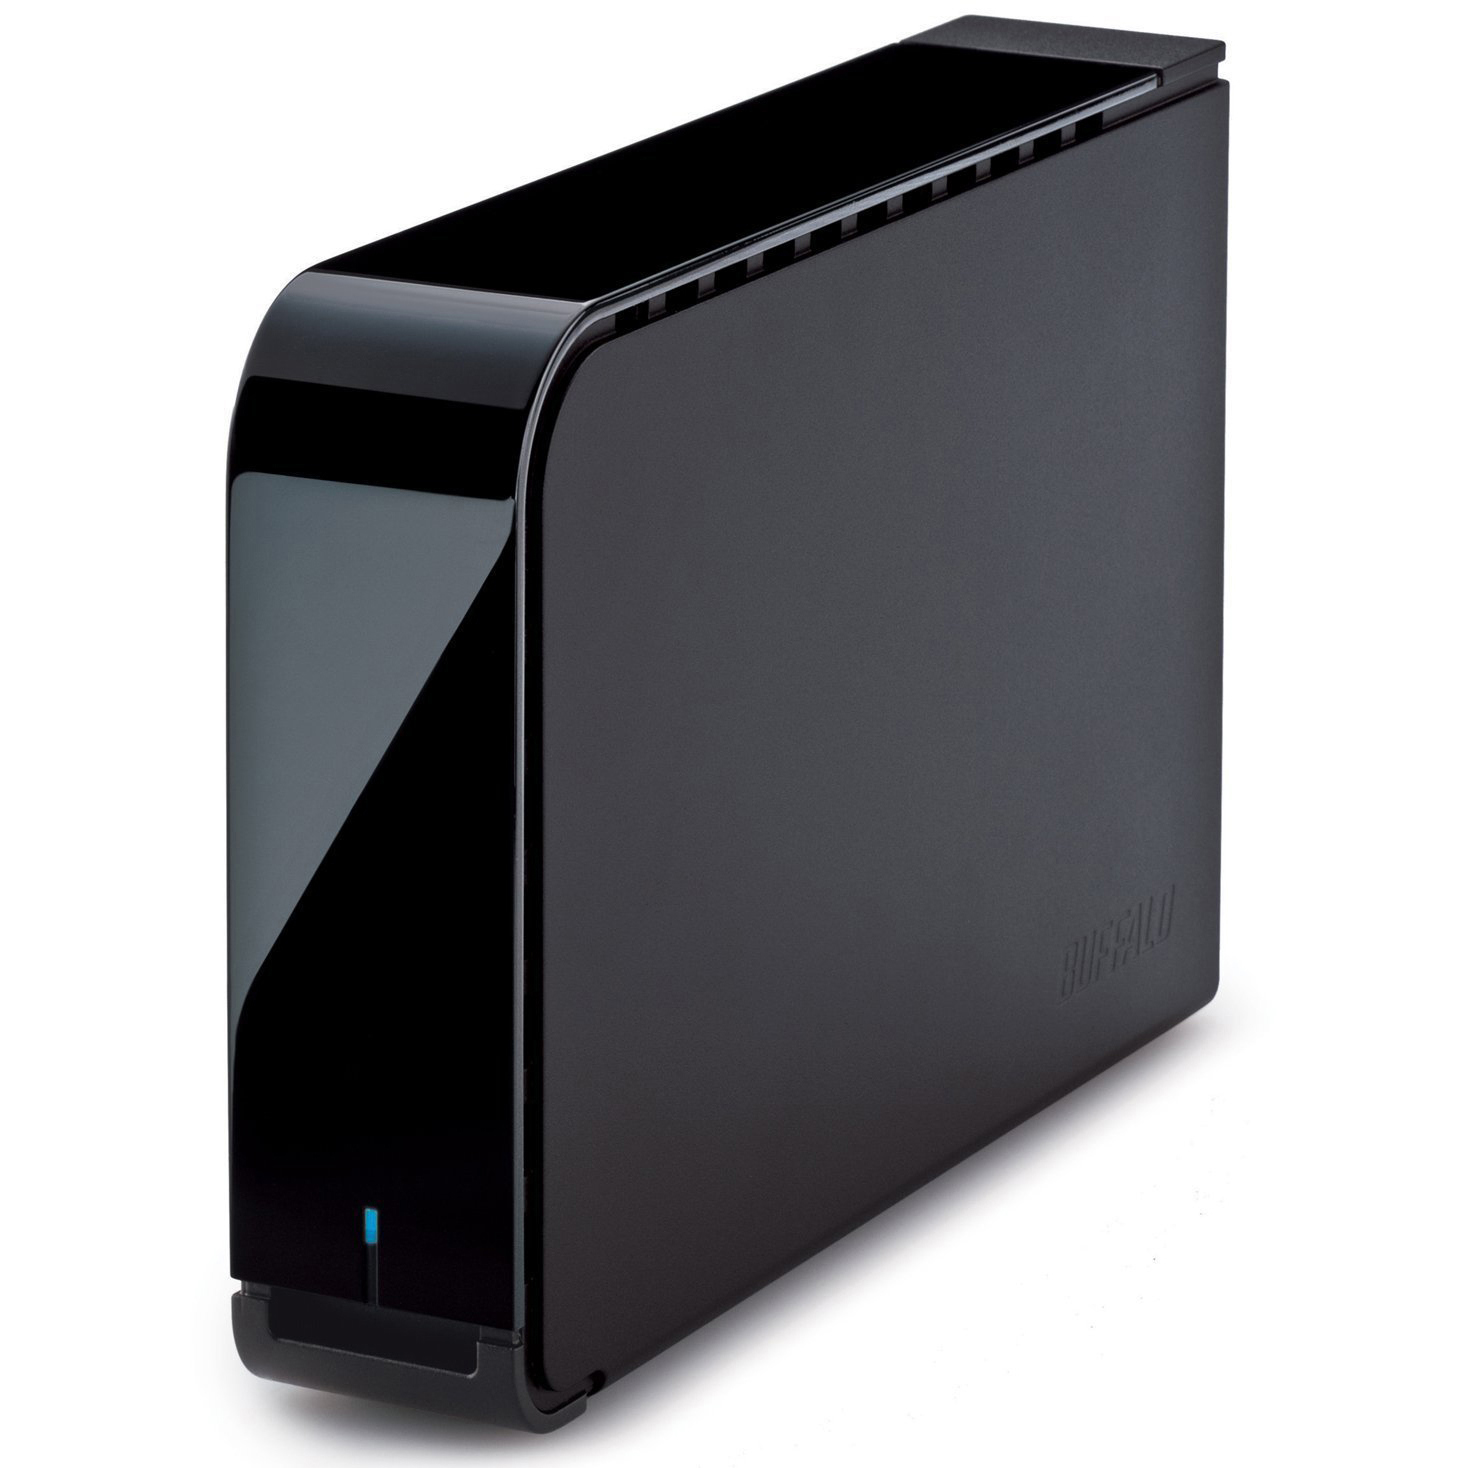 Original Buffalo DriveStation Velocity 4TB USB 3.0 External Hard Drive (HD-LX4.0TU3-EU)